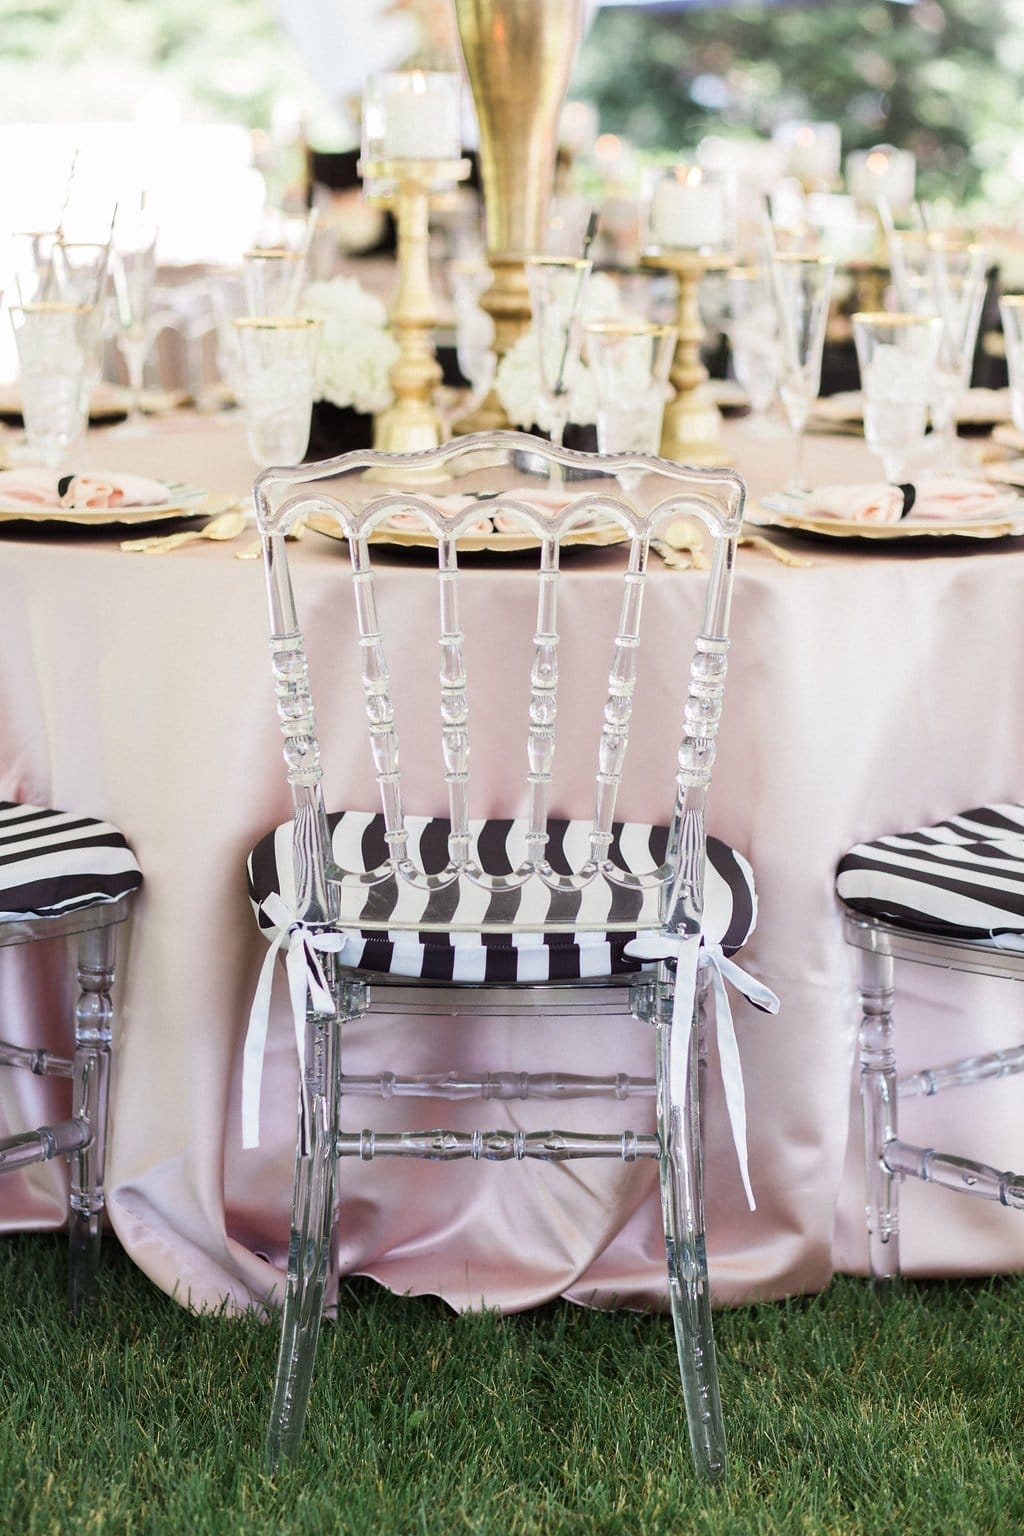 acrylic chairs with black and white cushions and pink table cloth - Black & White Kate Spade Inspired Bridal Shower